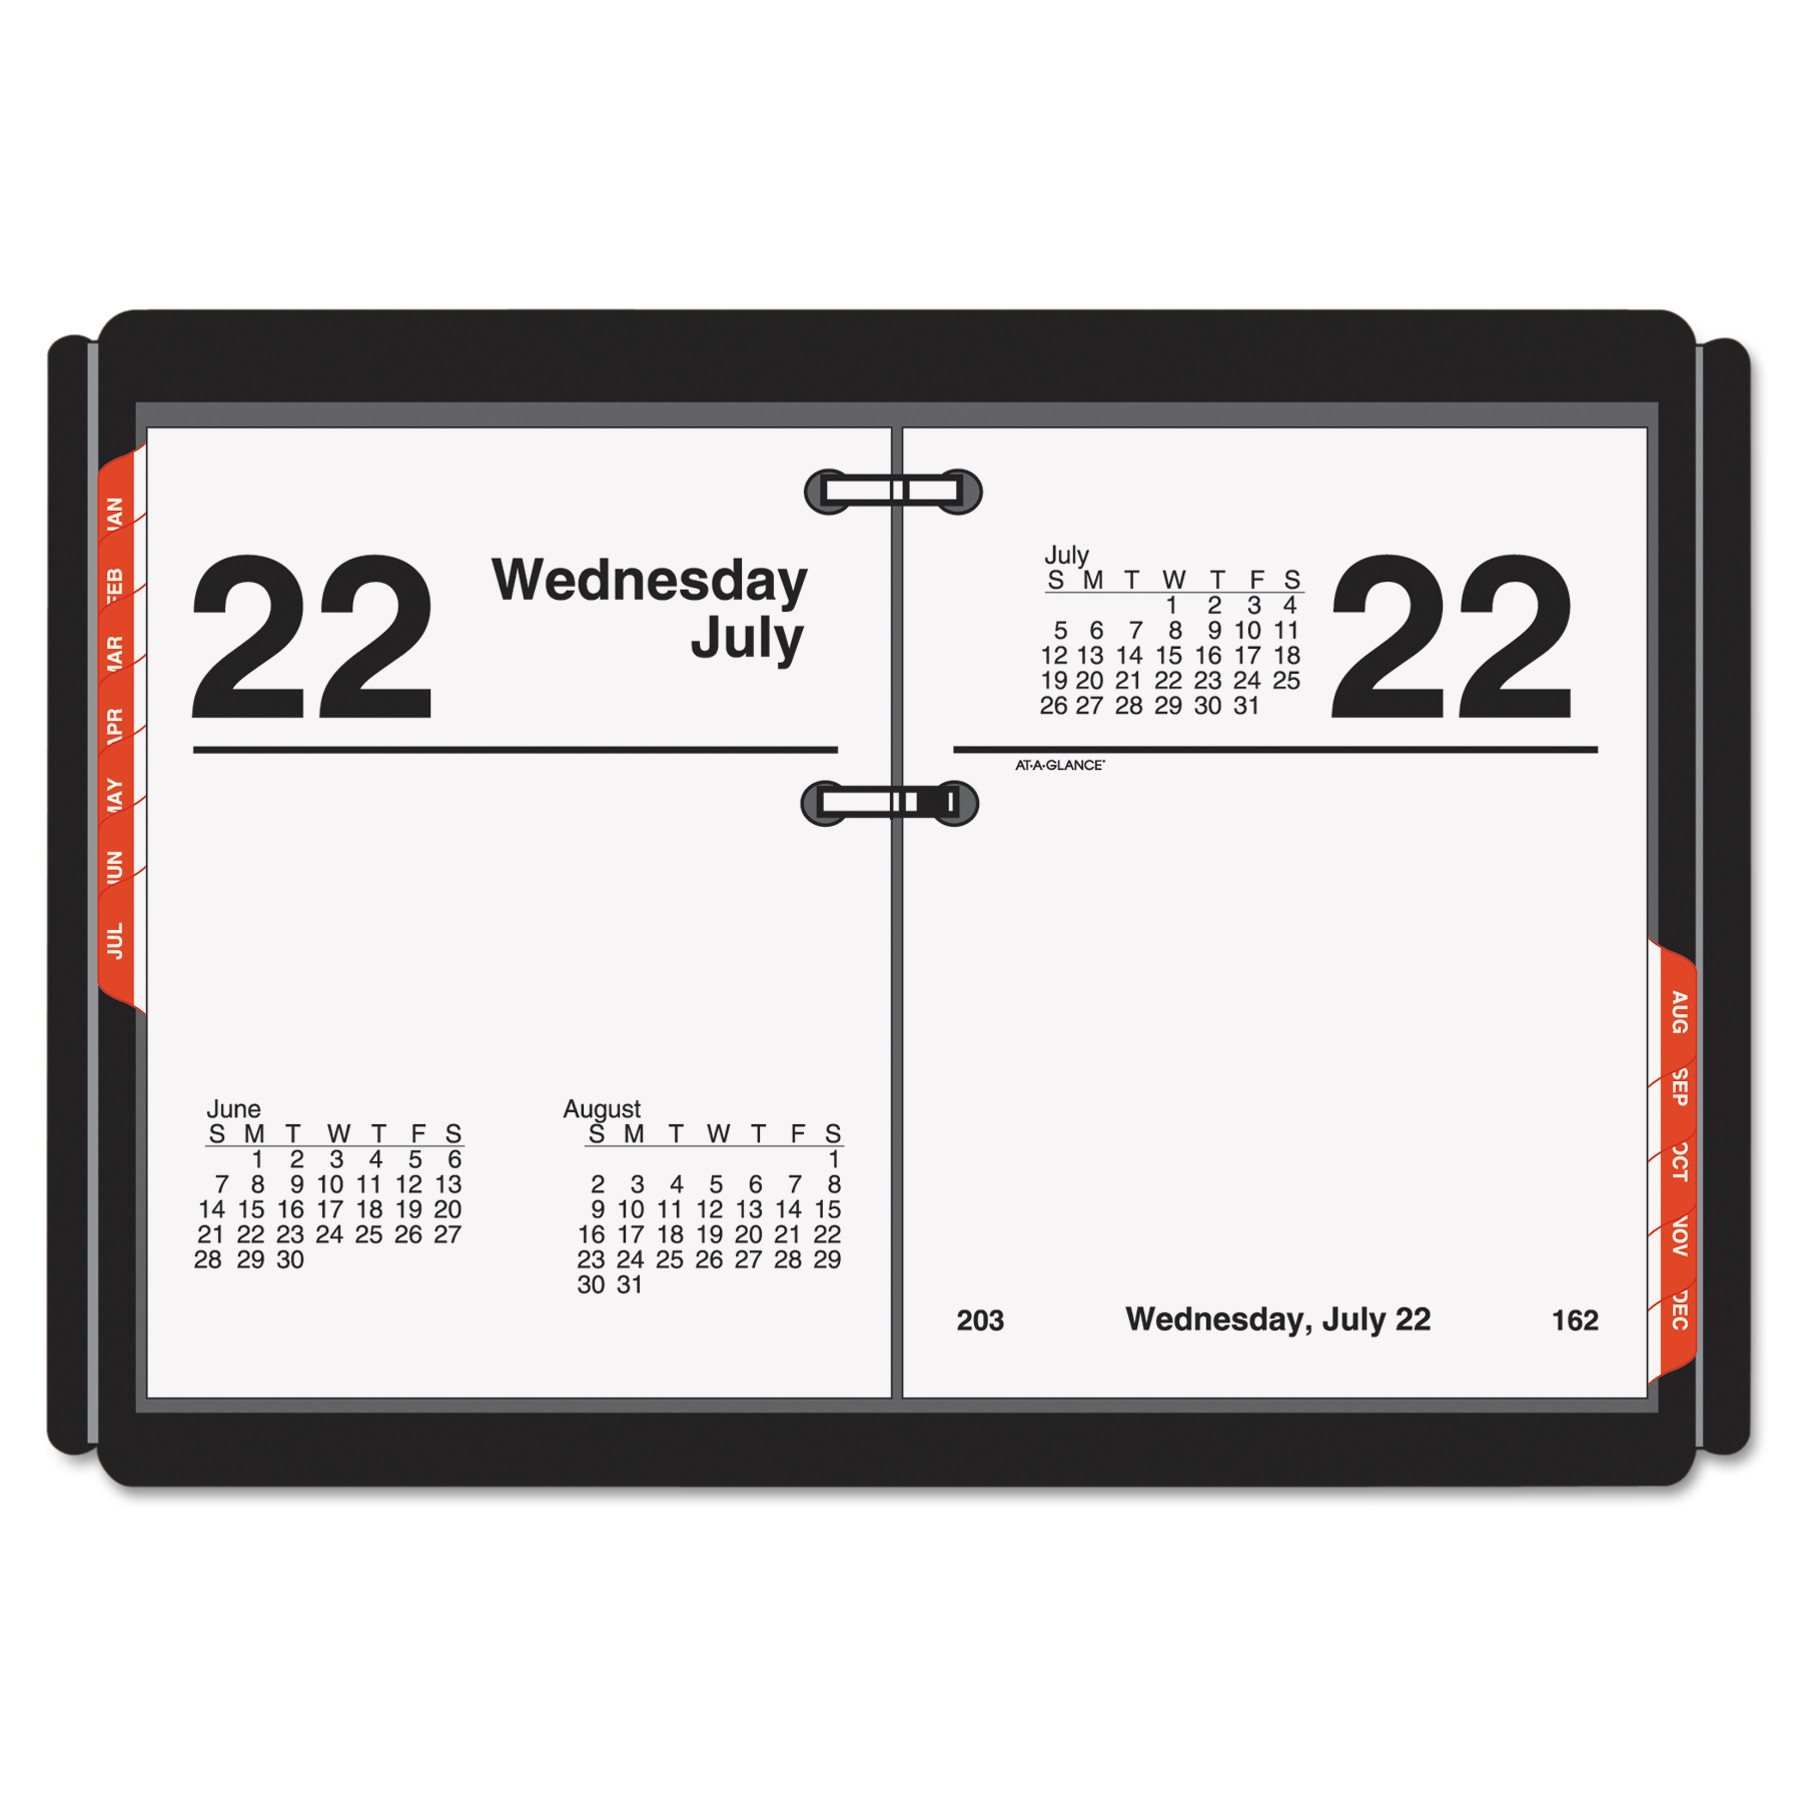 AT-A-GLANCE Compact Desk Calendar Refill, 3 x 3 3 4, White, 2018 by AT-A-GLANCE